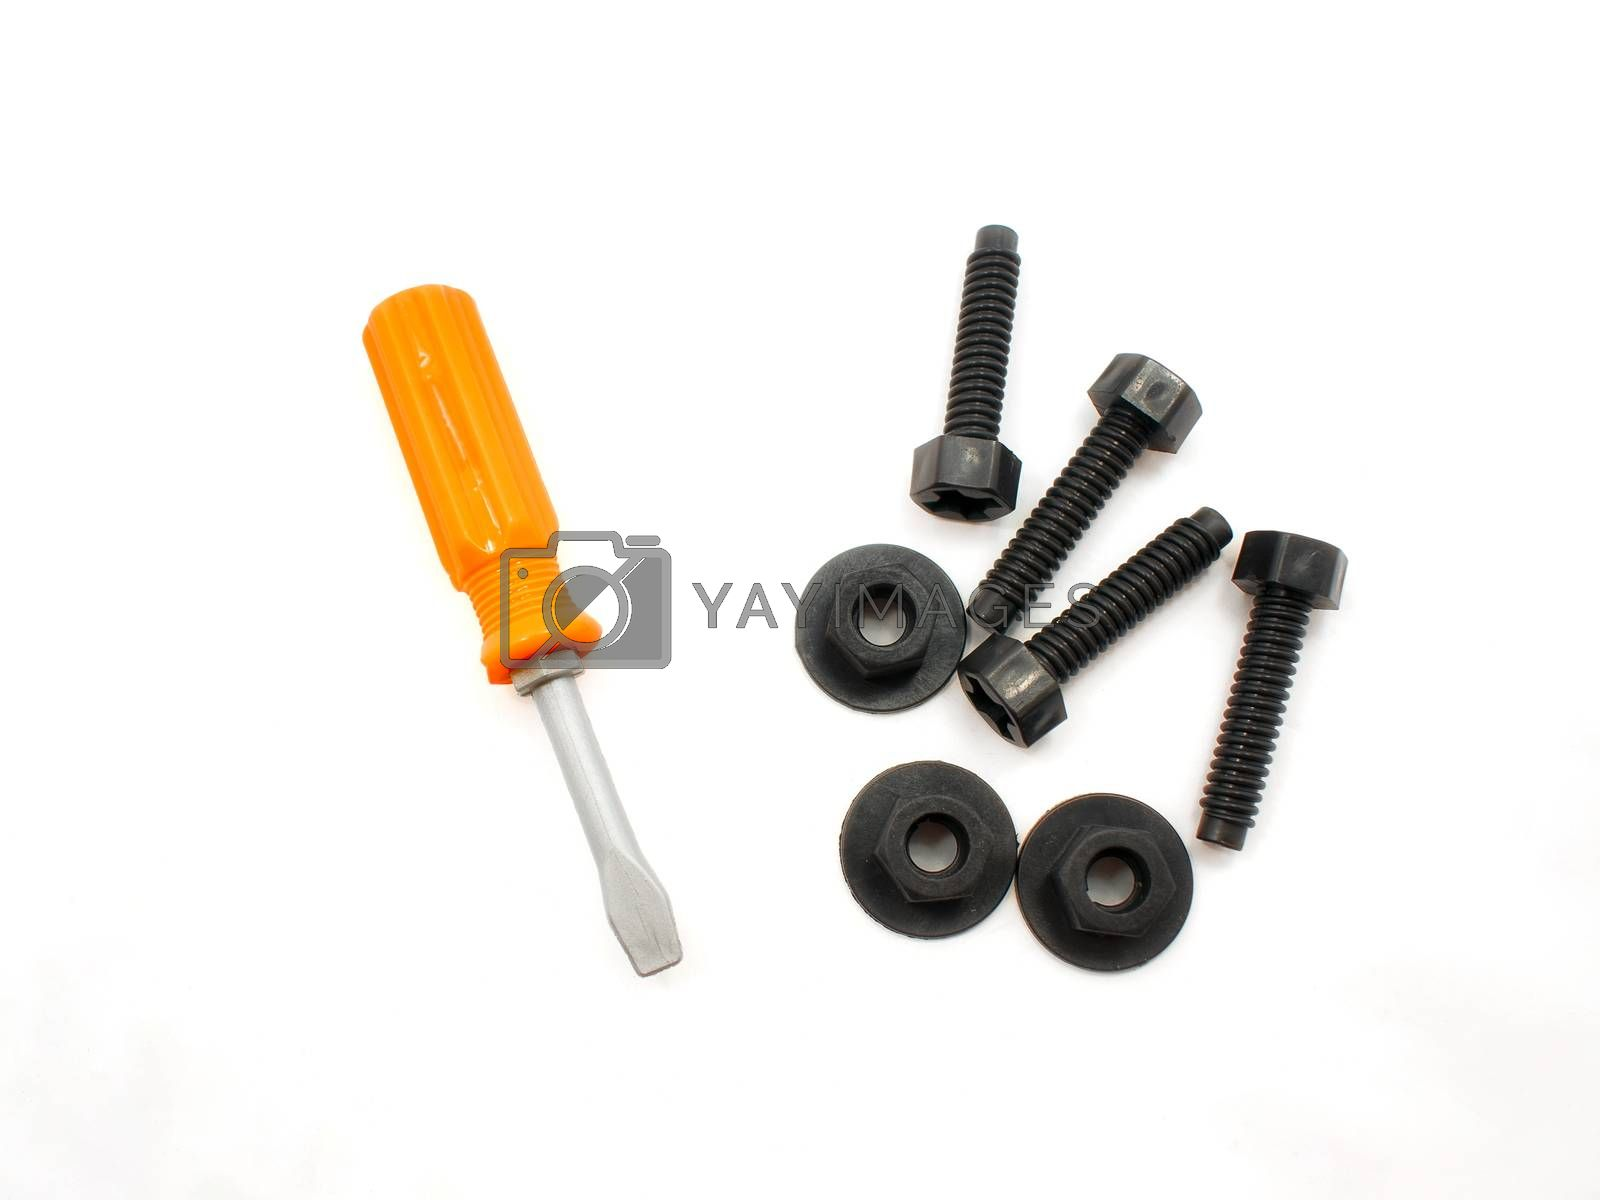 Set of Children's Screwdriver, Screws and Nuts